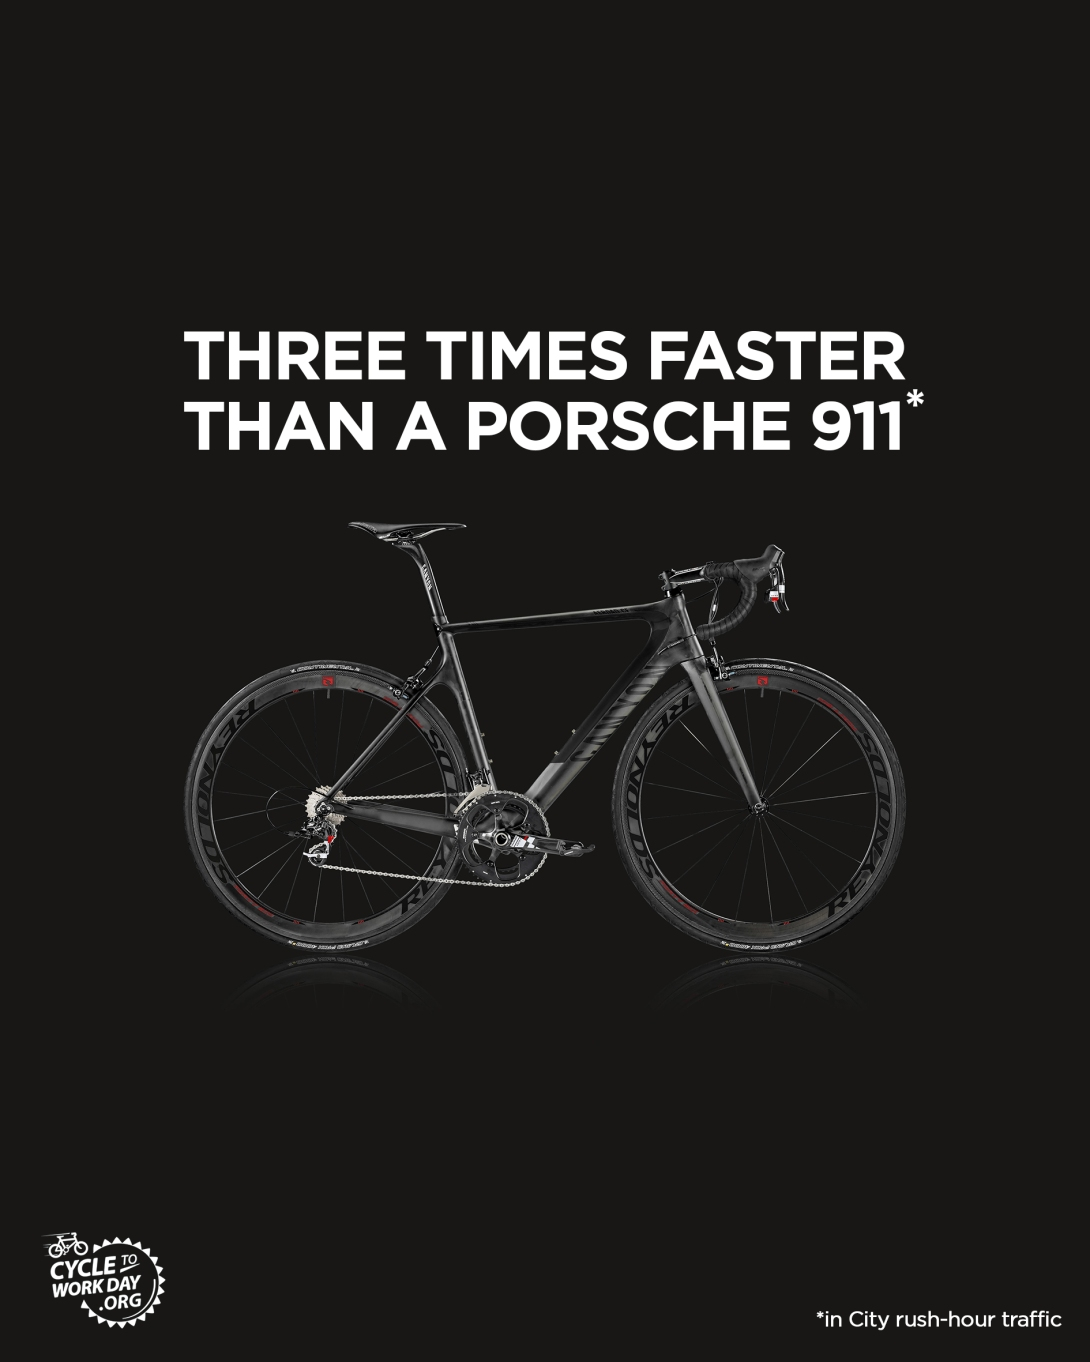 advertising idea for cycle to work day - a bike is three times faster than a Porsche 911 in rush-hour city traffic